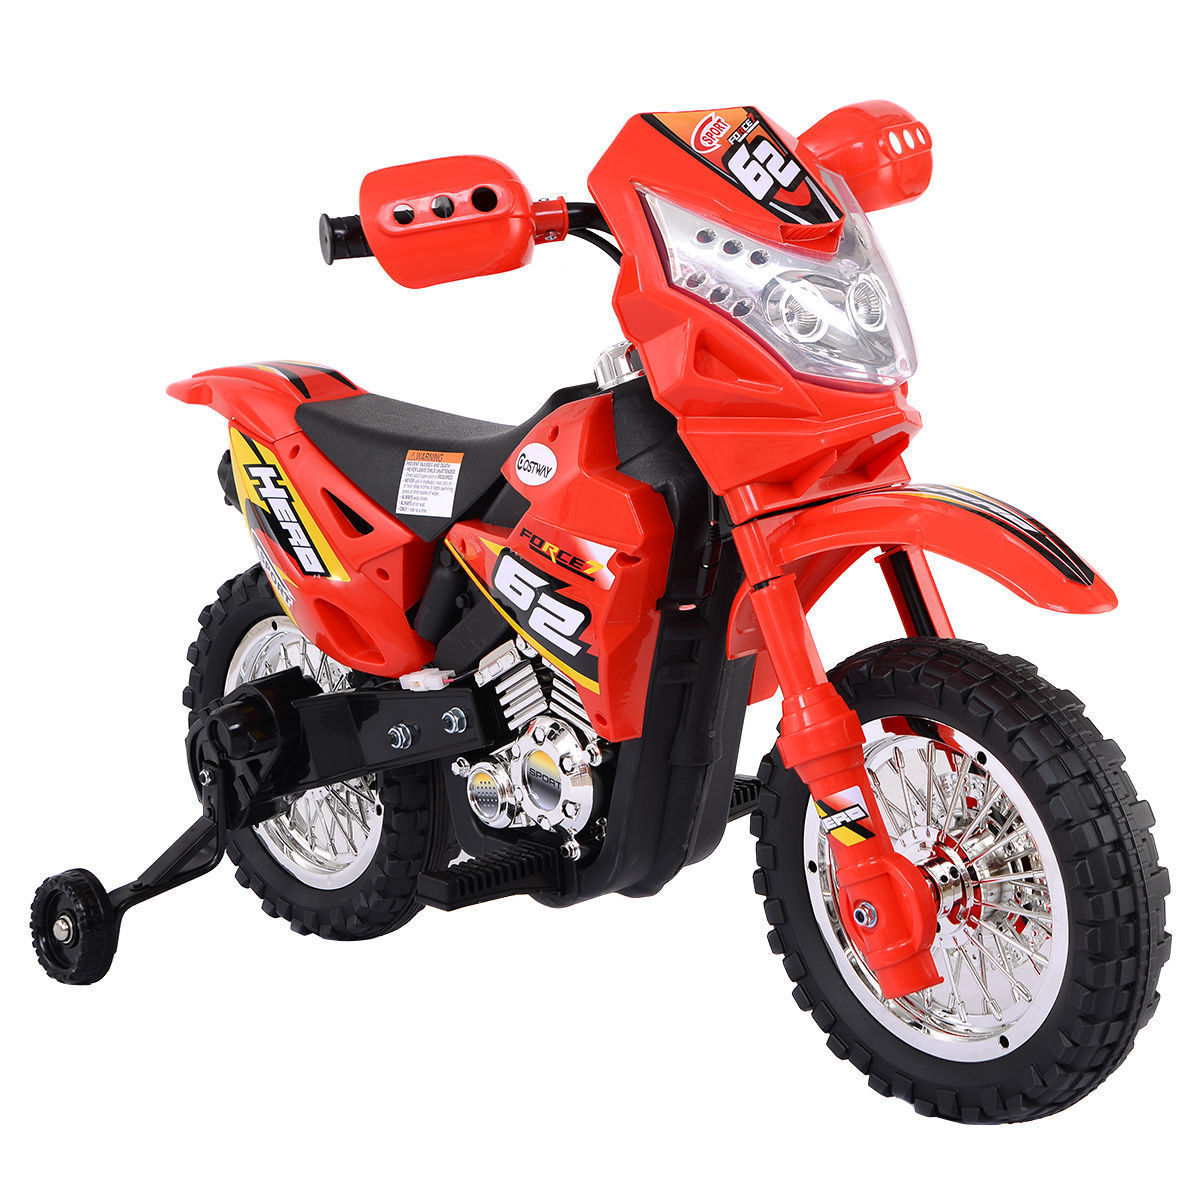 Costway Kids Ride On Motorcycle with Training Wheel 6V Battery Powered Electric Toy by Costway